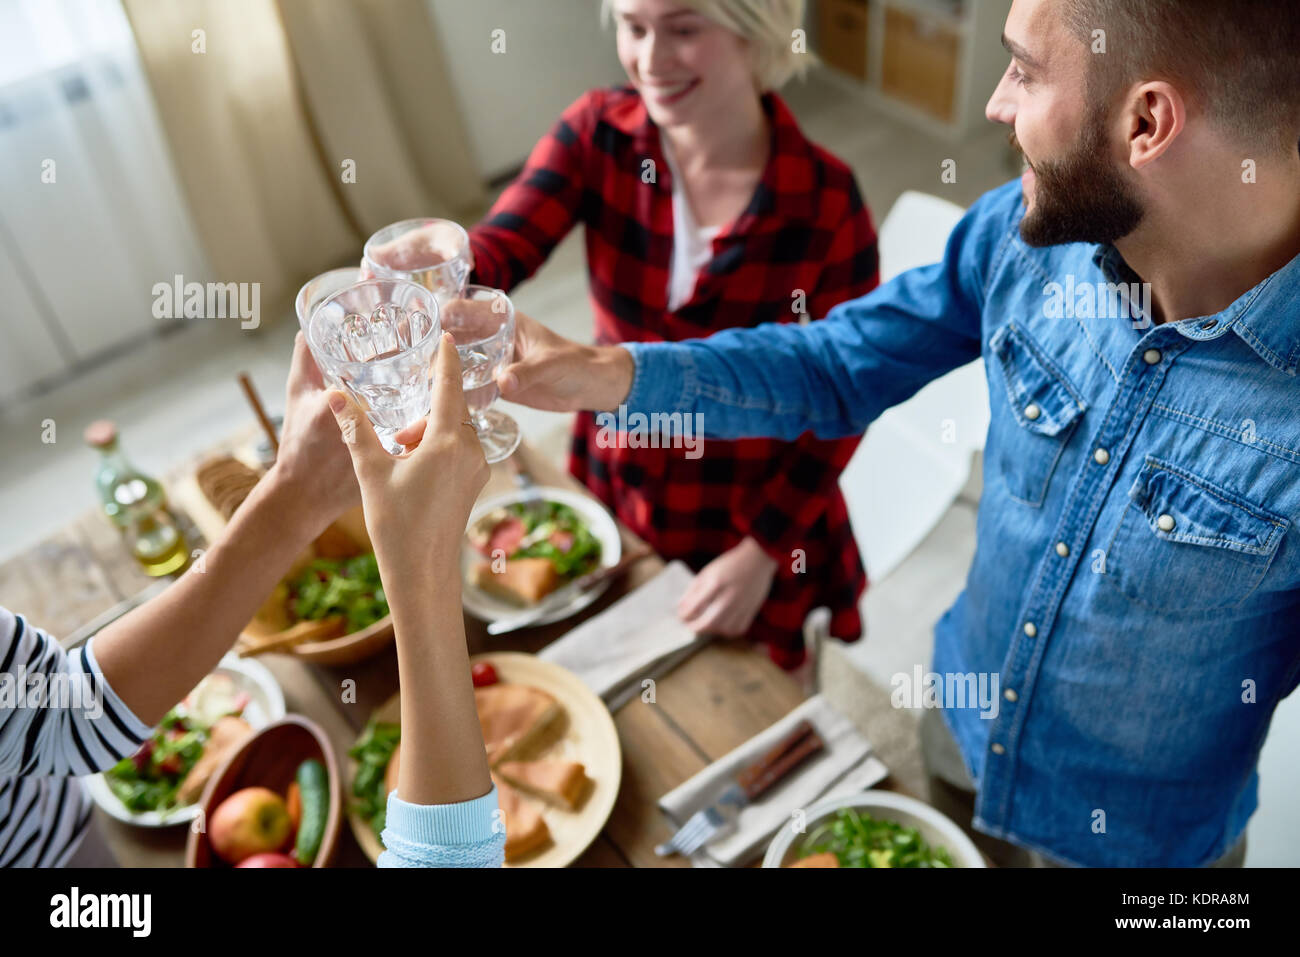 Friends Clinking Glasses at Thanksgiving Dinner - Stock Image